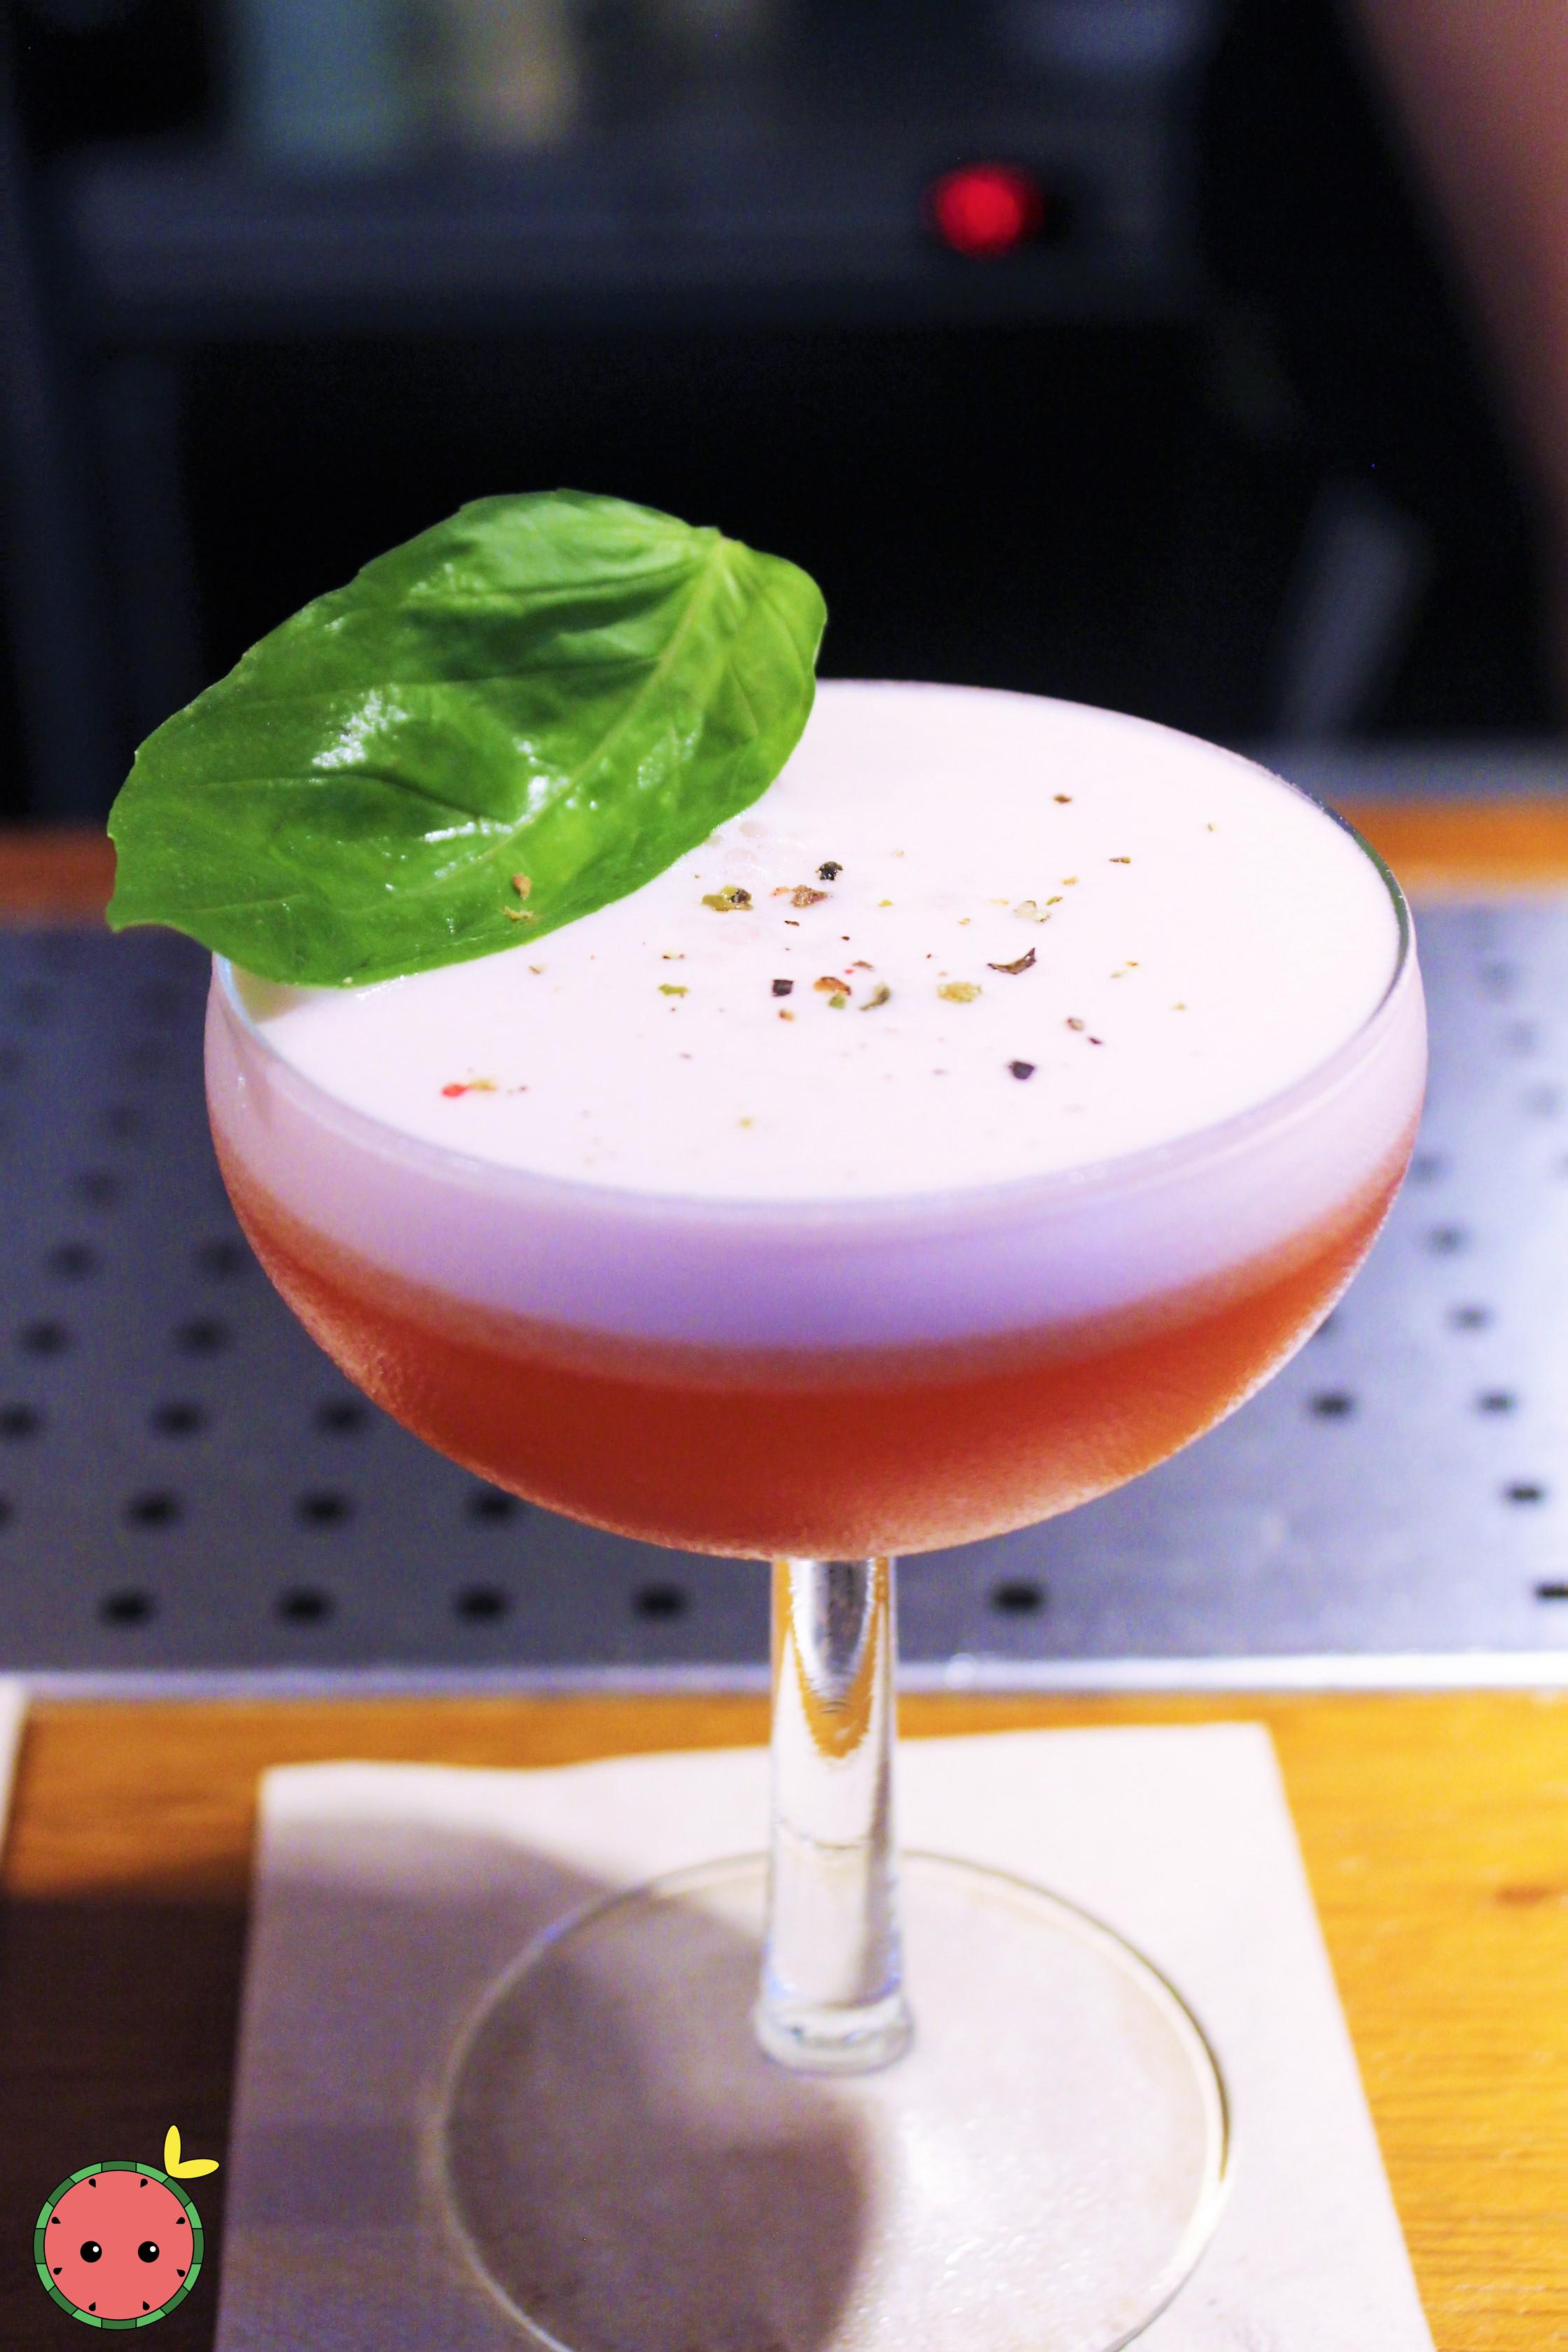 Basil Club Cocktail - Gin sour, raspberries, basil, and fresh lemon juice topped with ground pepper